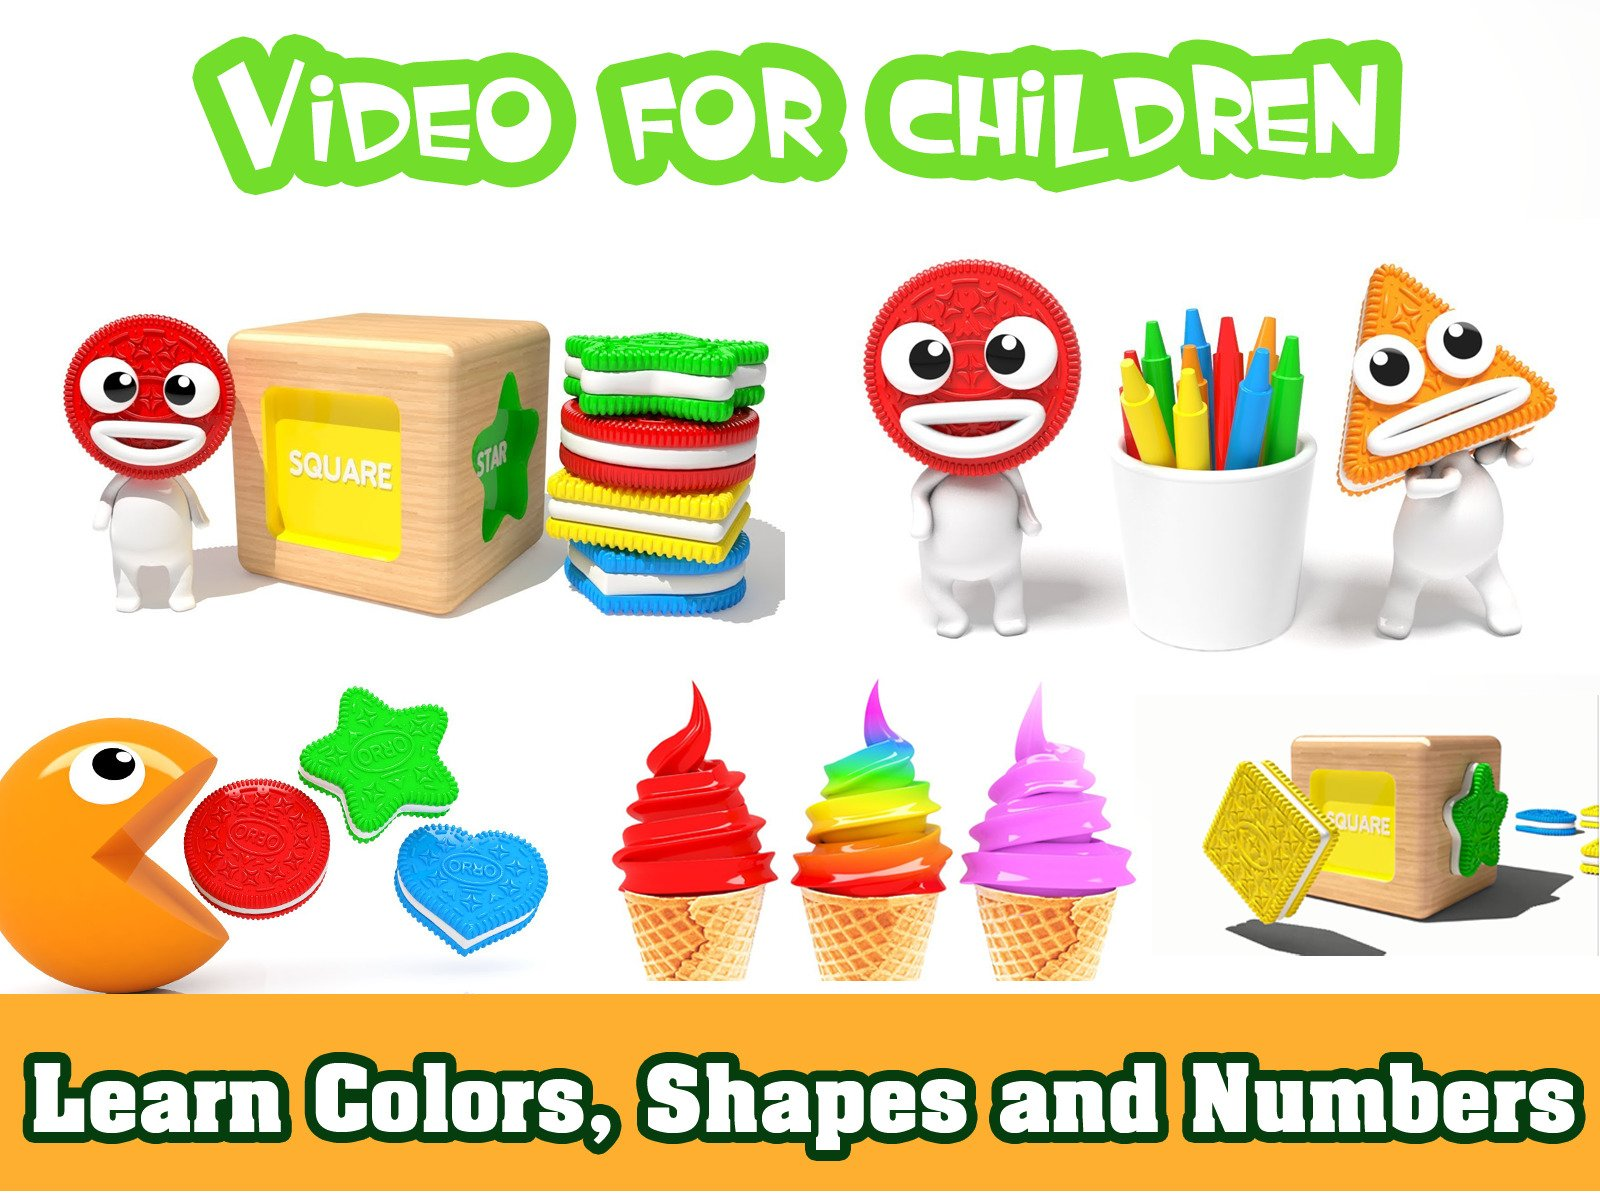 Learn Colors, Shapes and Numbers - Season 1